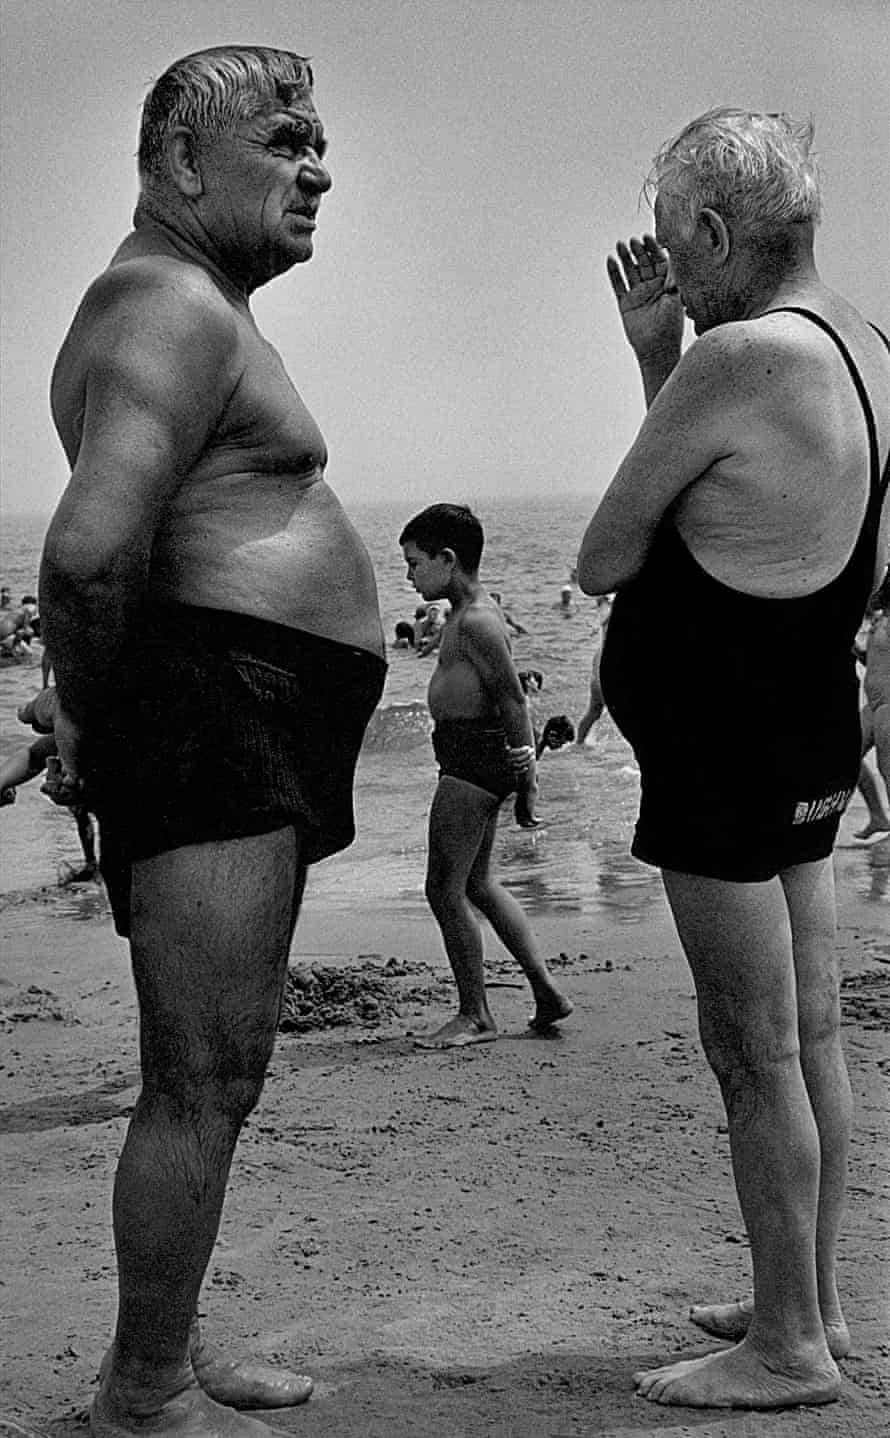 Two Men and a Boy Contemplate, Coney Island, New York, 1950